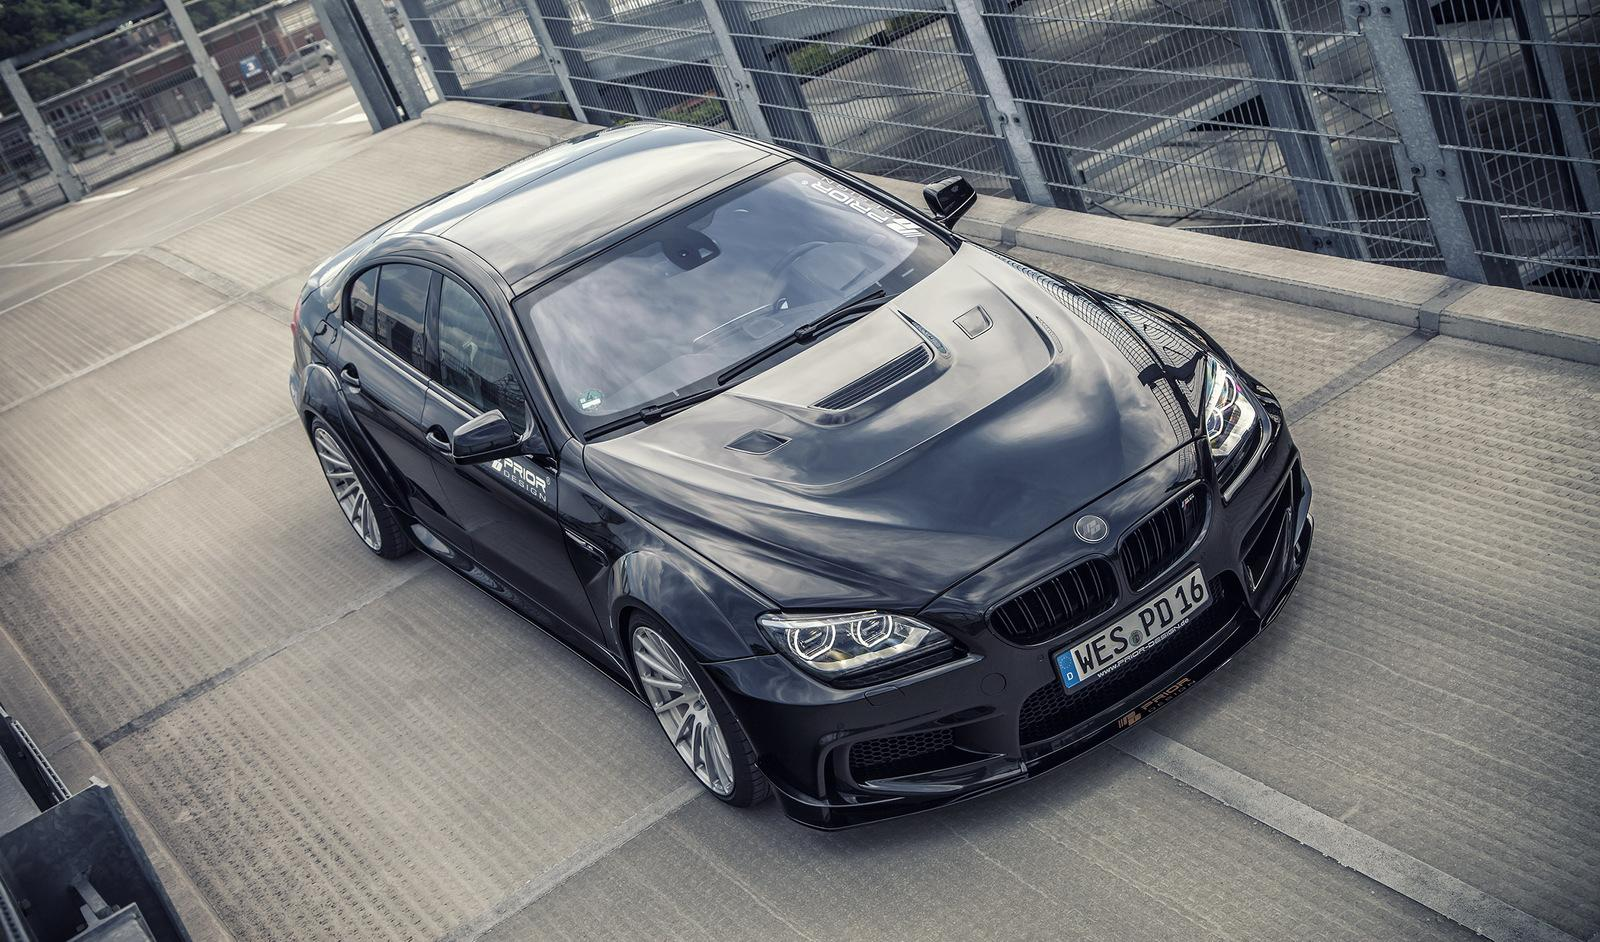 If A Normal Bmw M6 Gran Coupe Worked Out This Insane M6 Pd6xx Would Be The Result